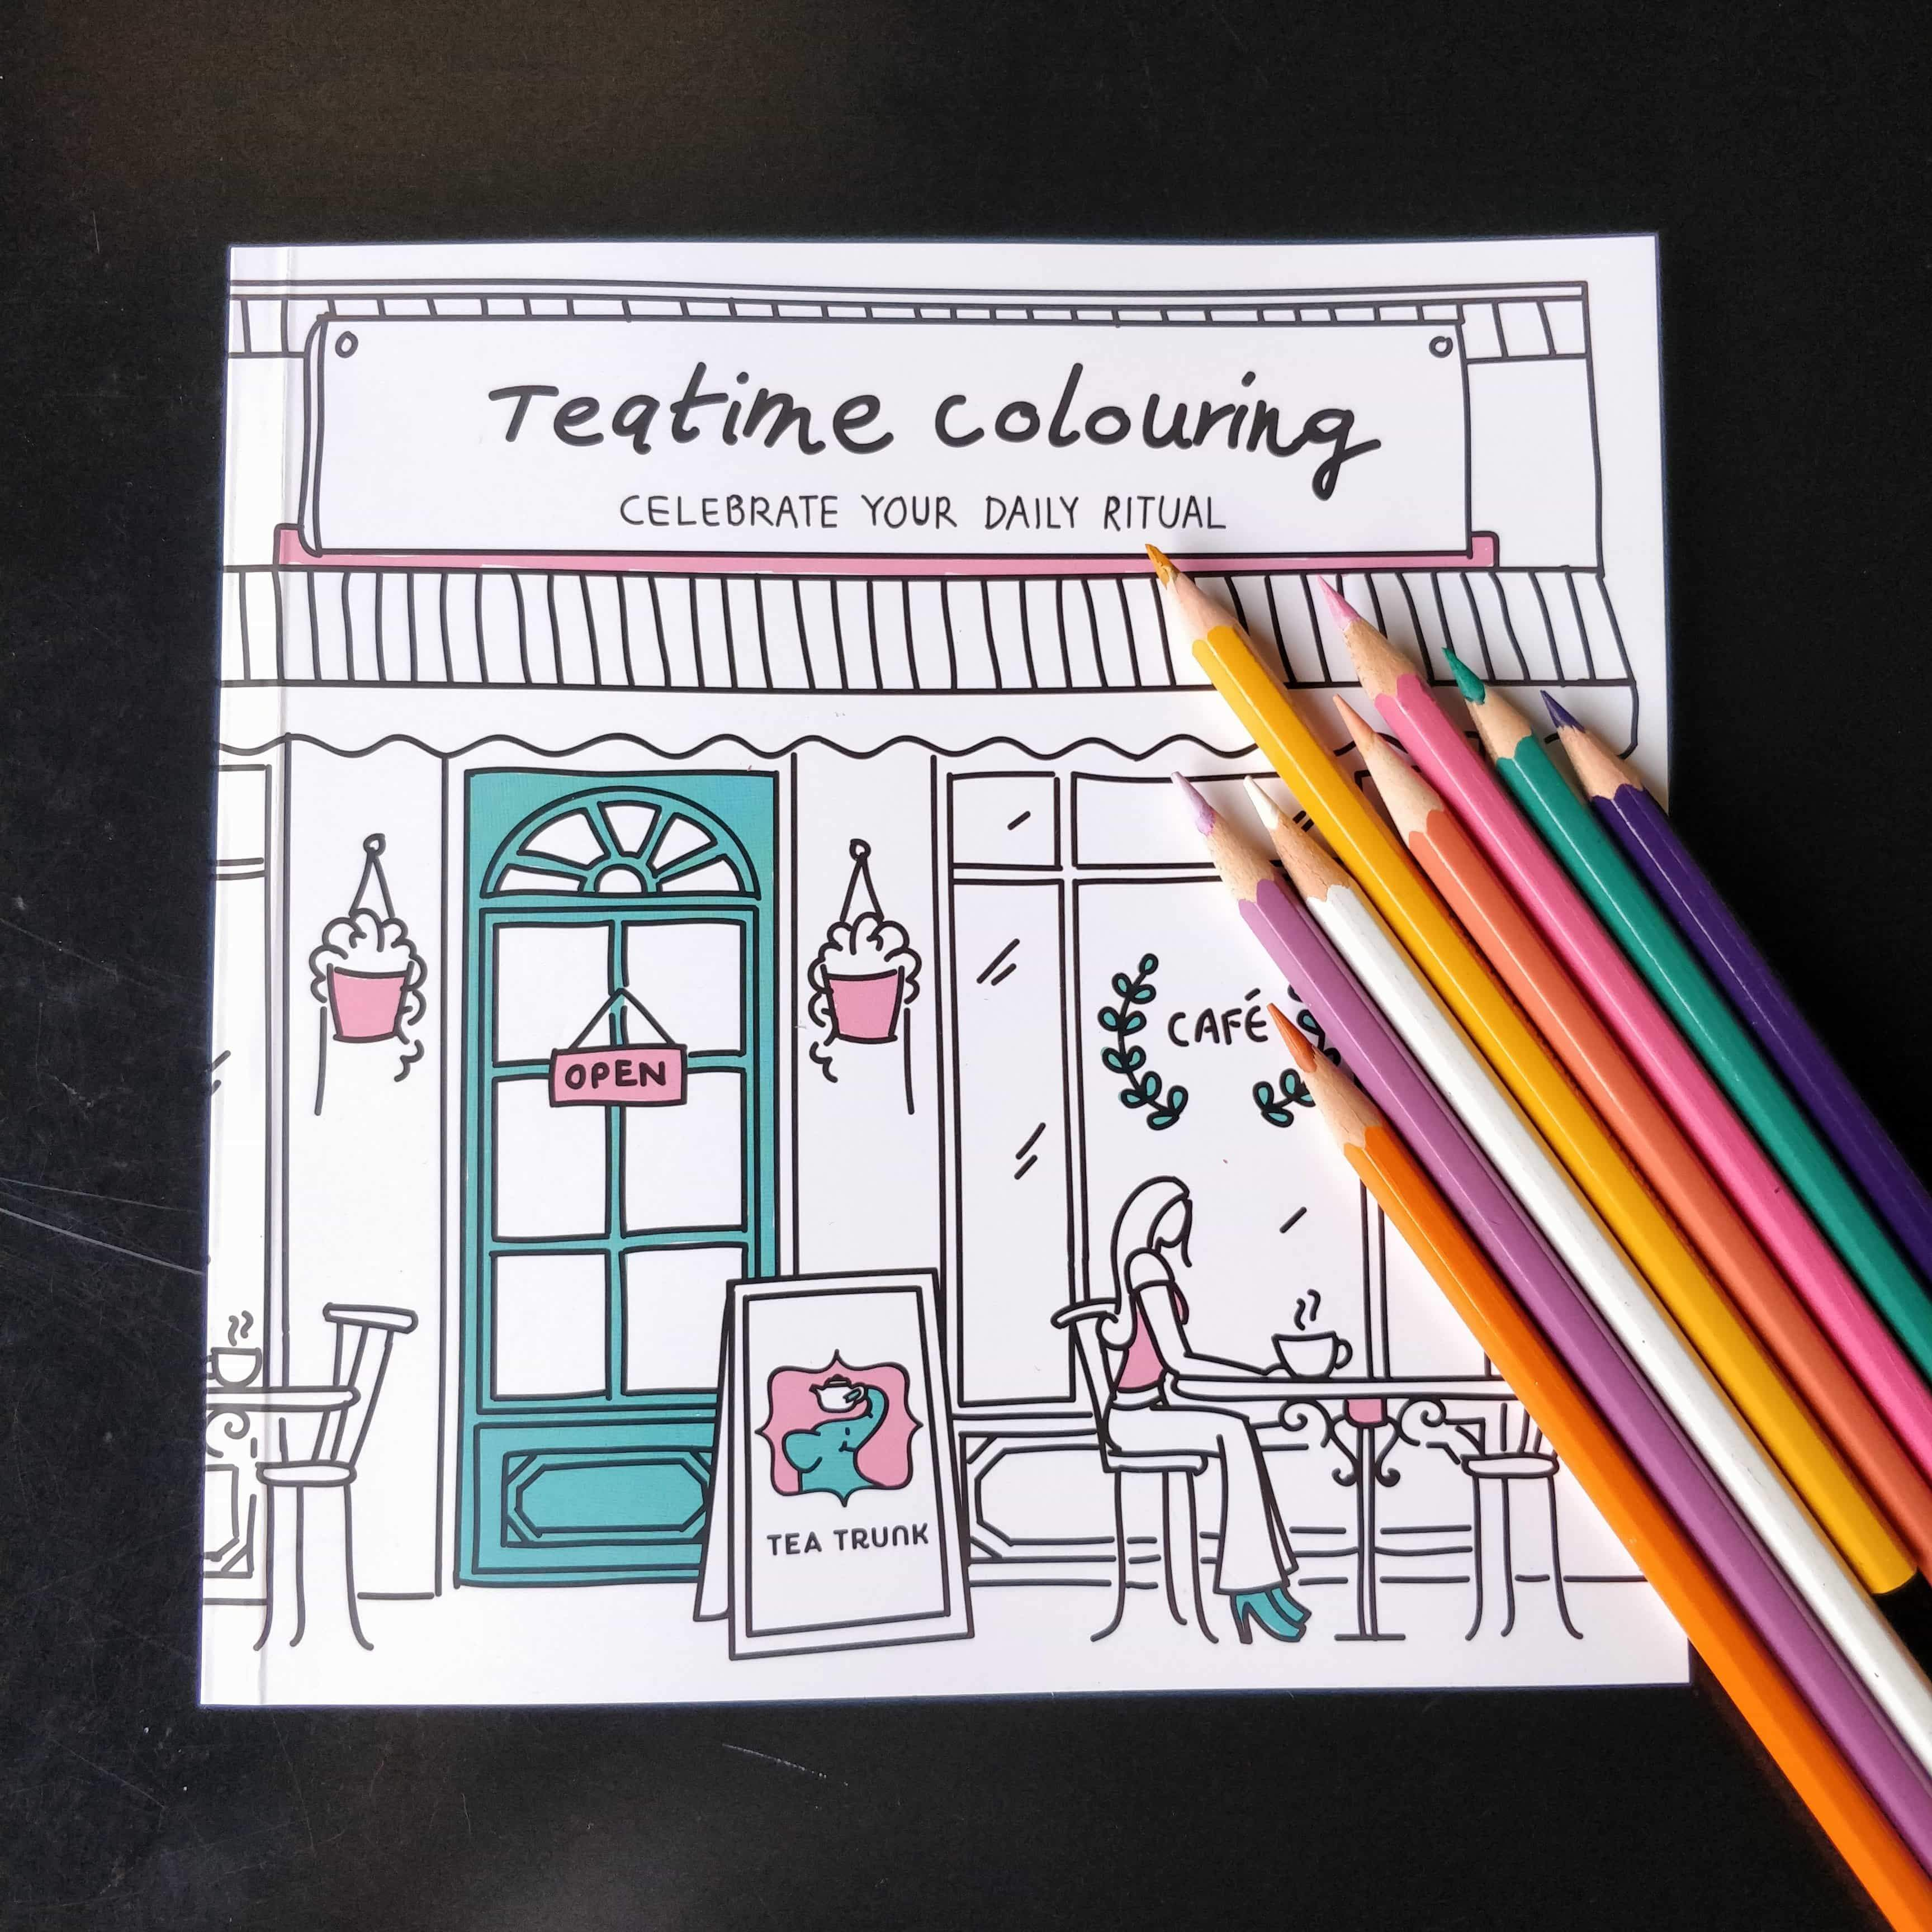 Teatime Colouring, an adult colouring book - Tea Trunk